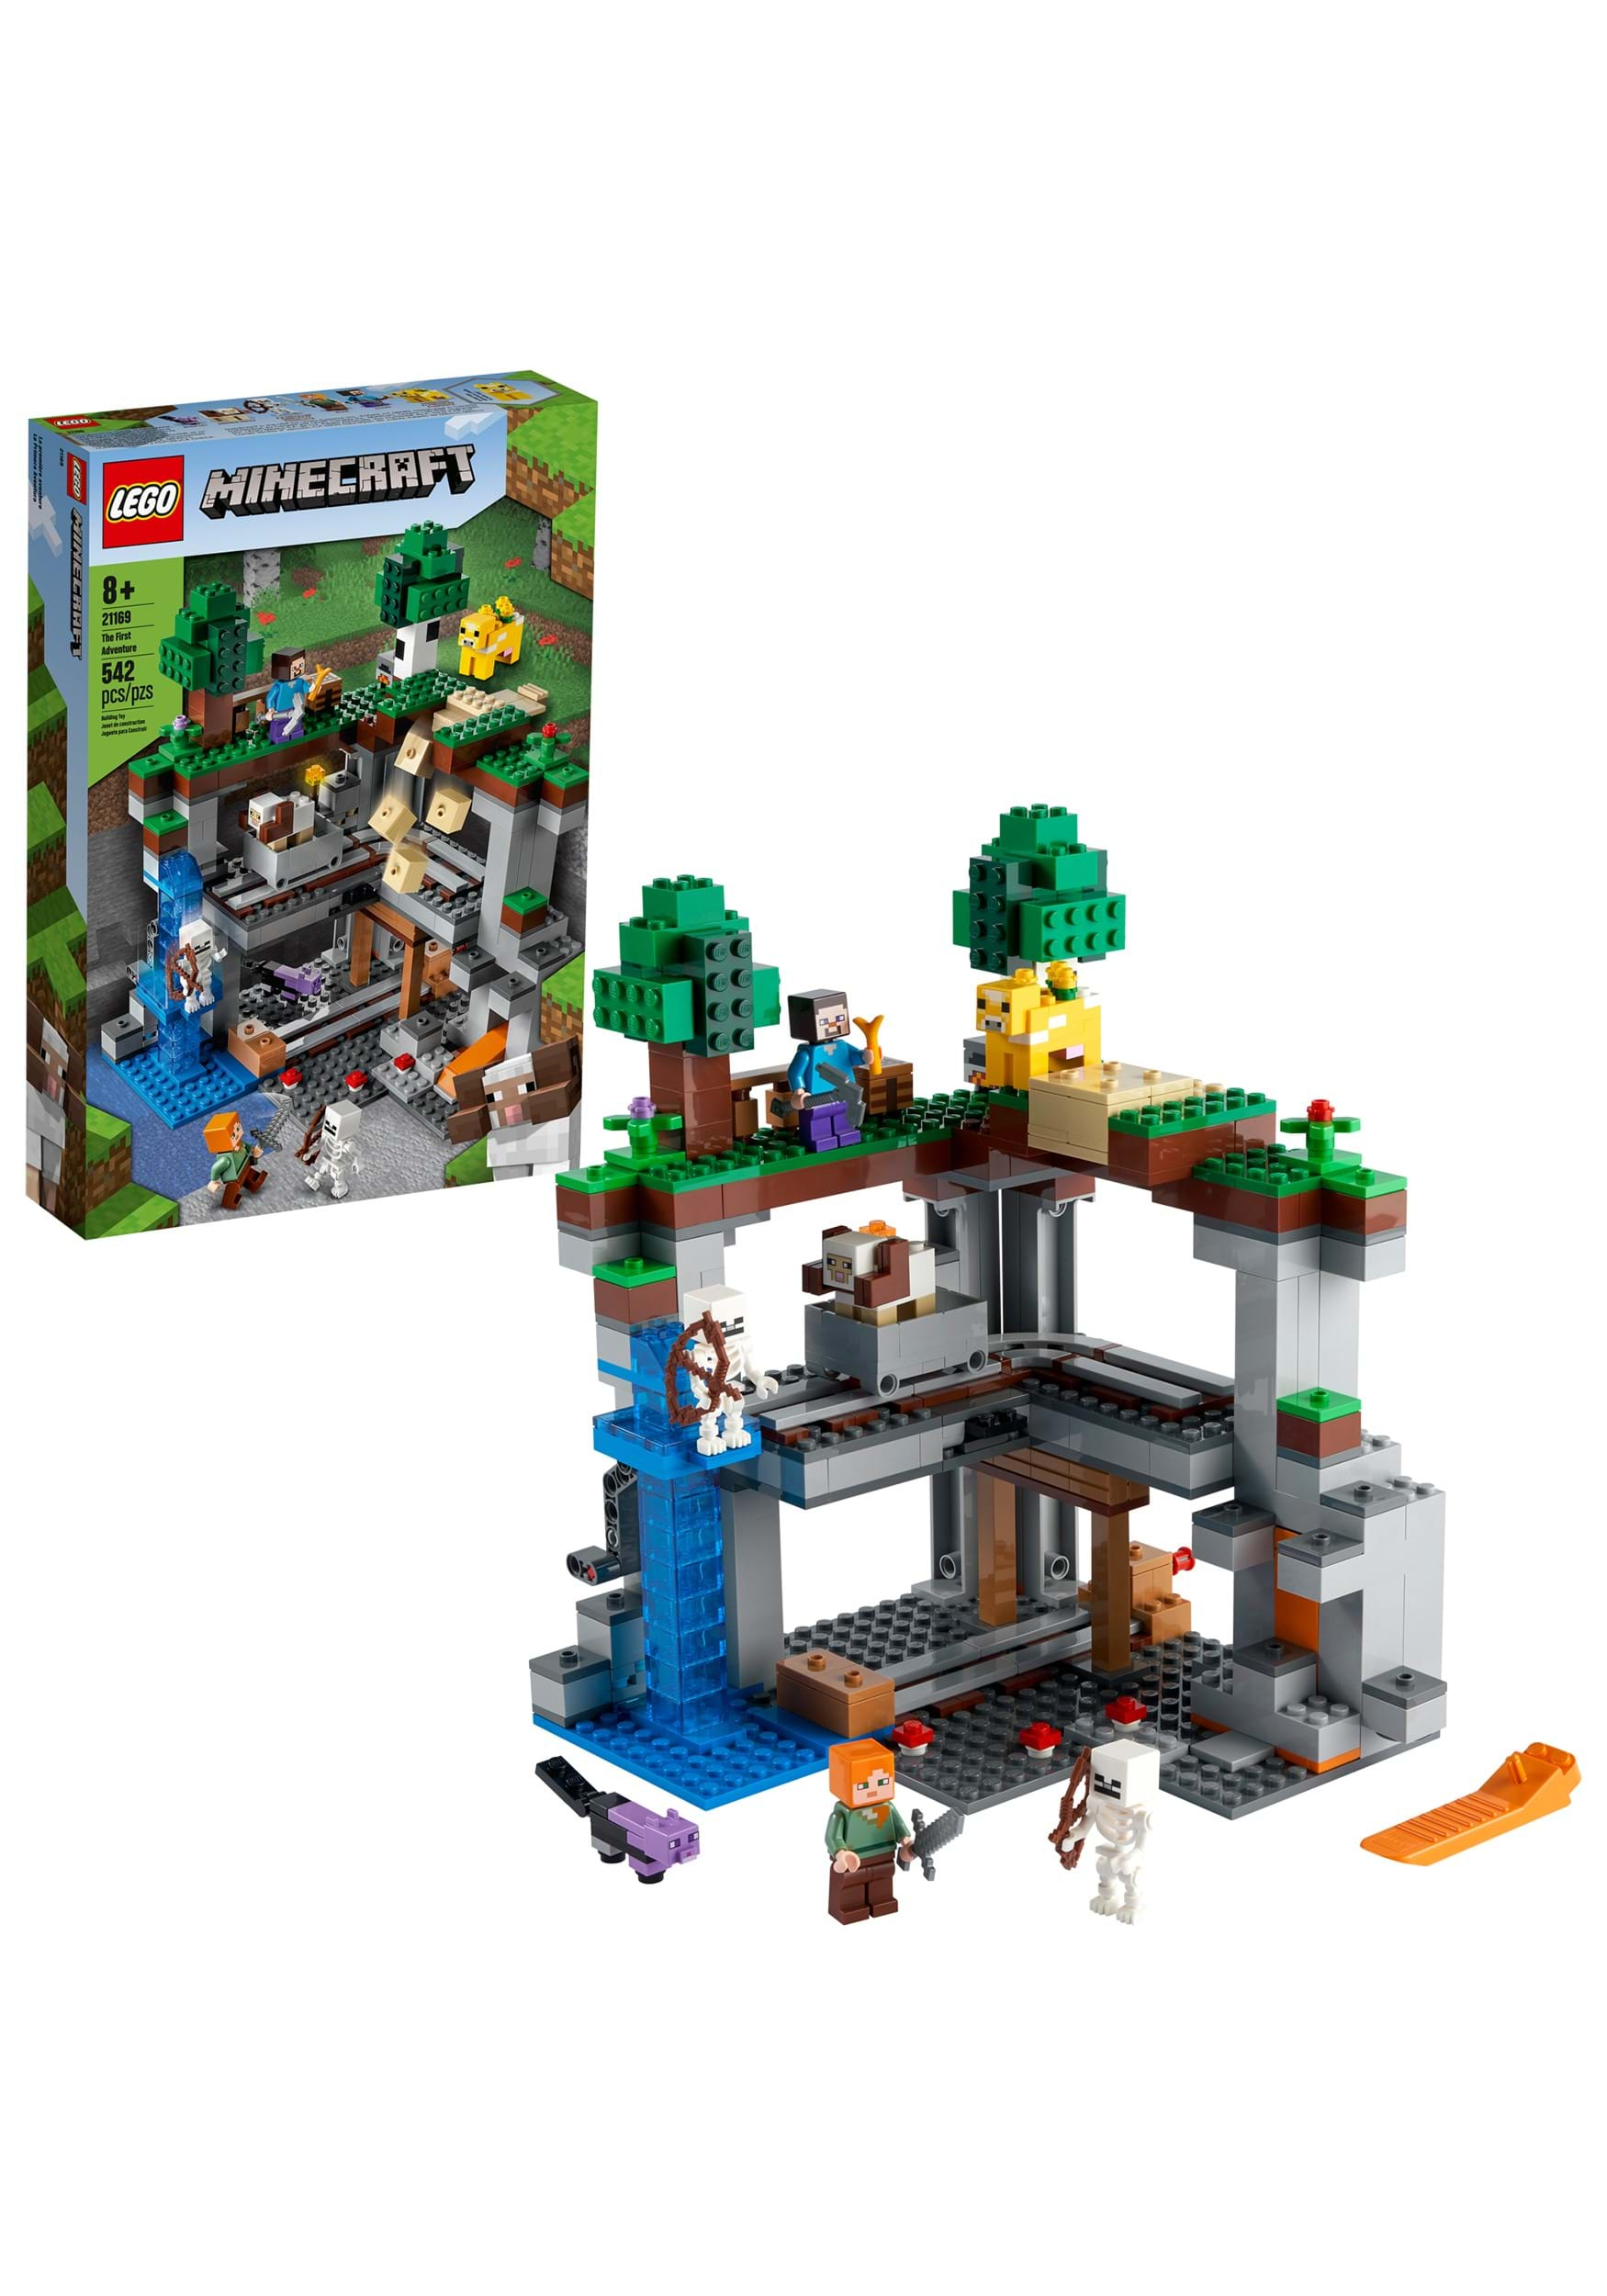 Minecraft The First Adventure from LEGO